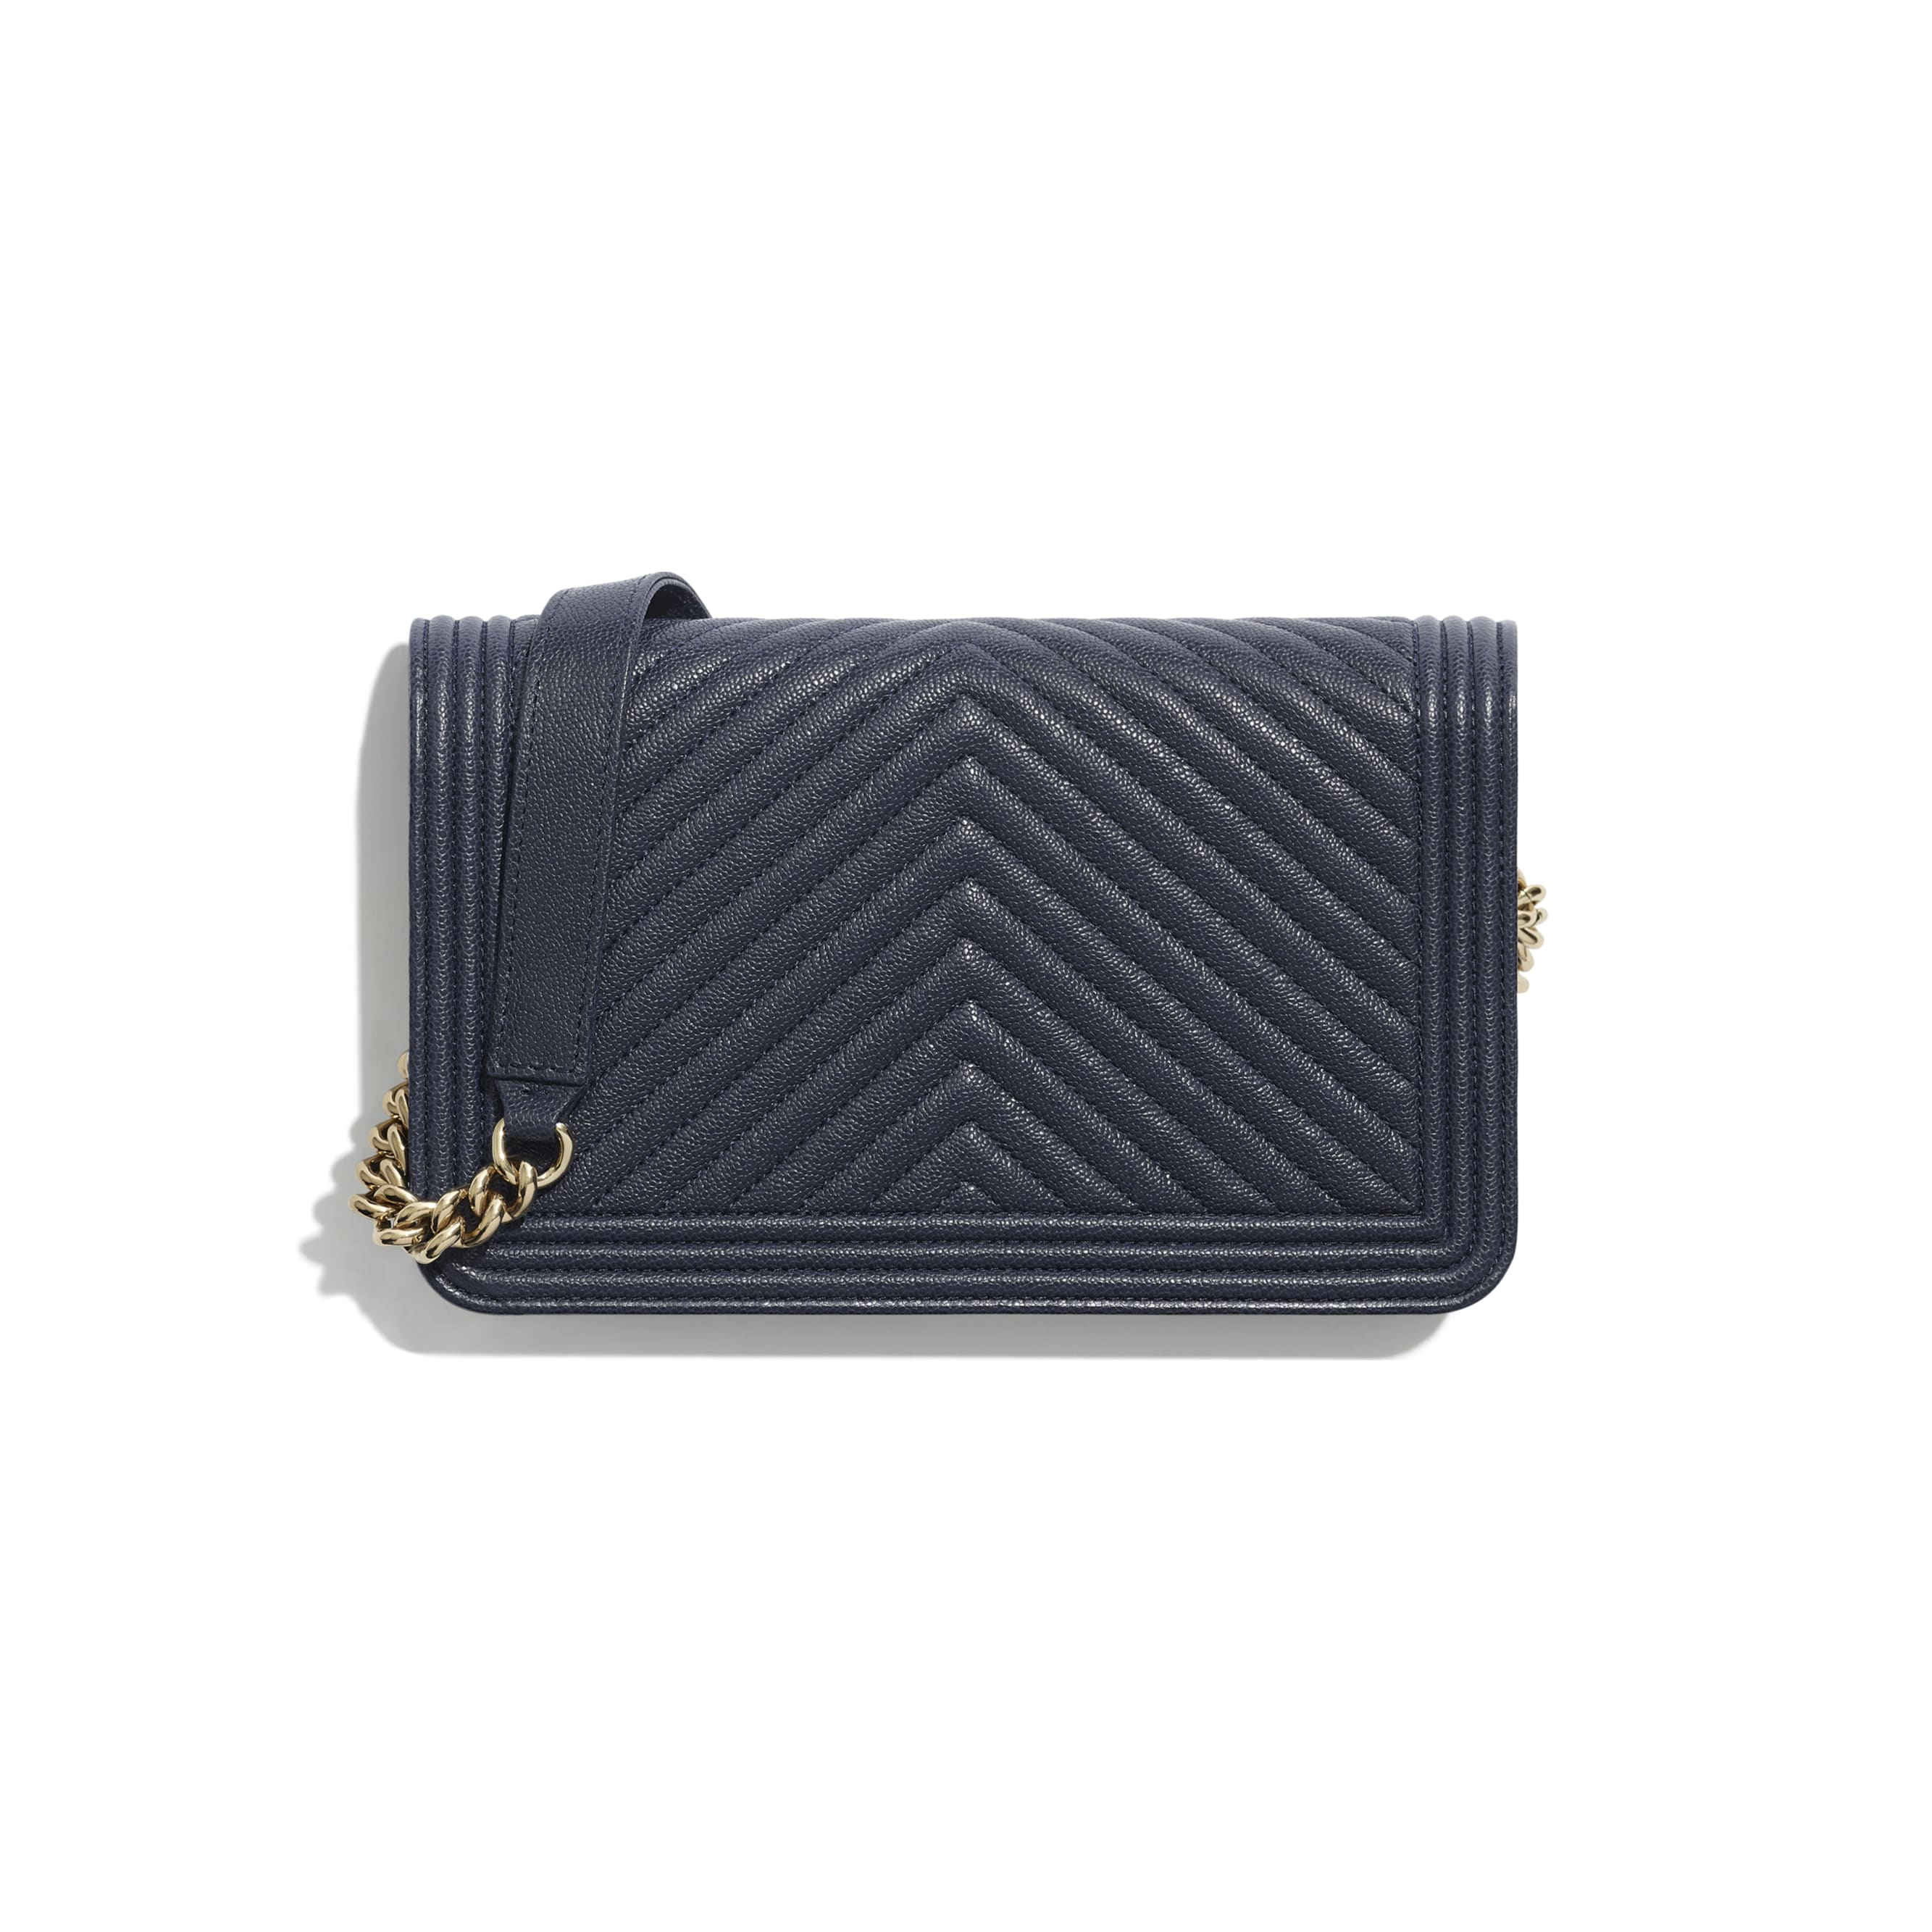 BOY CHANEL Wallet On Chain - Navy Blue - Grained Calfskin & Gold-Tone Metal - Alternative view - see standard sized version